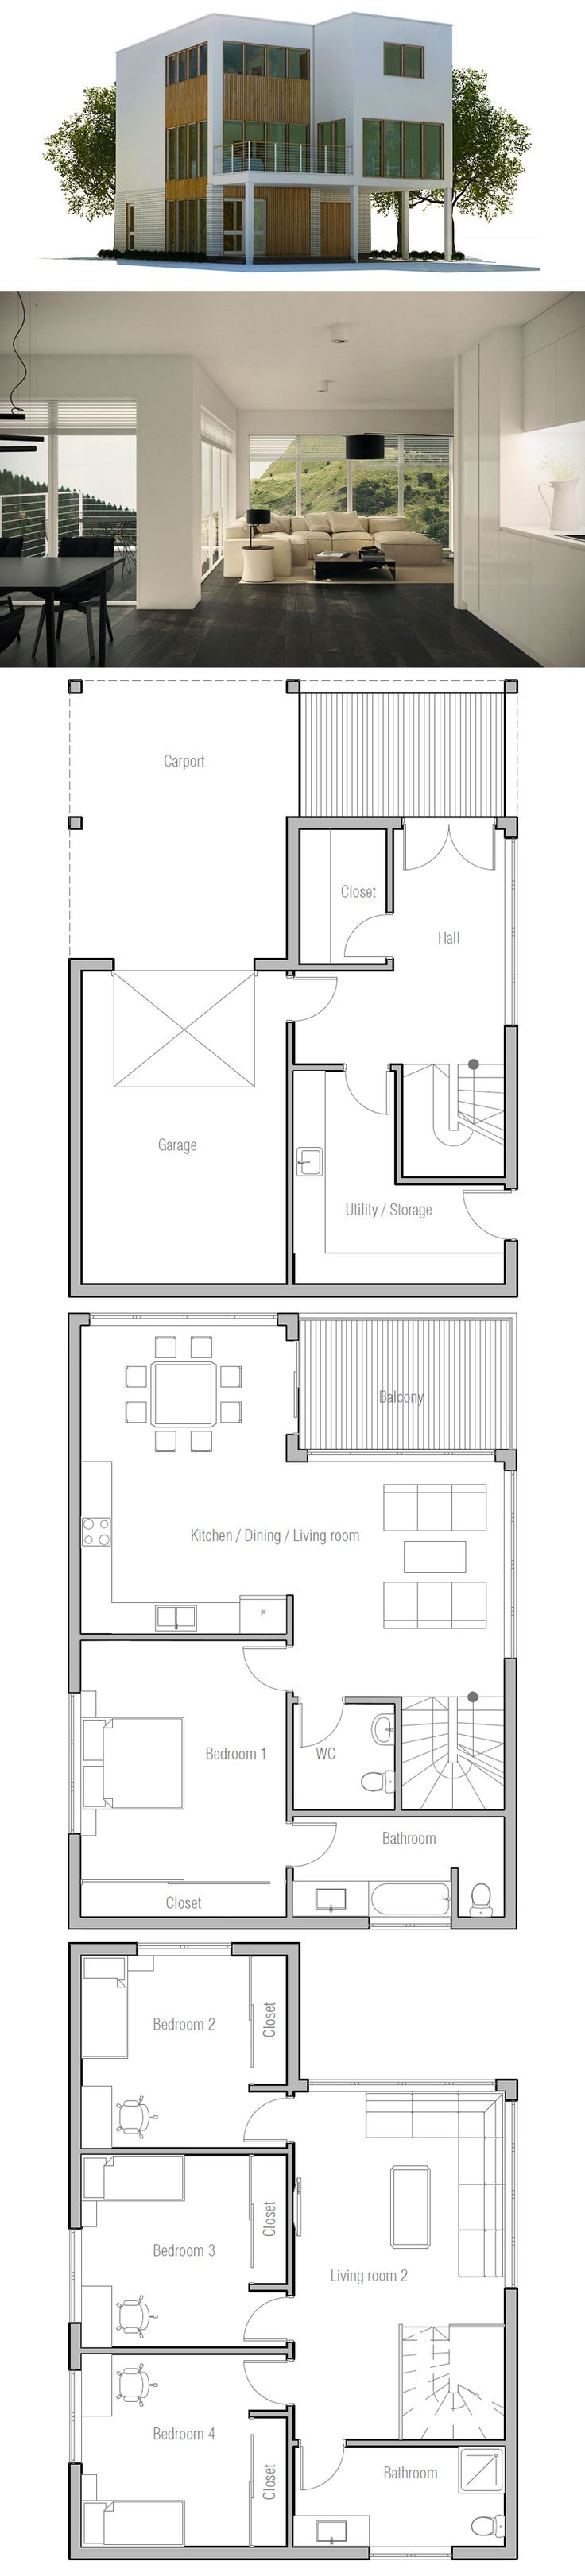 plus de 1000 id es propos de maisons minimalistes sur pinterest plans de maison plans de. Black Bedroom Furniture Sets. Home Design Ideas